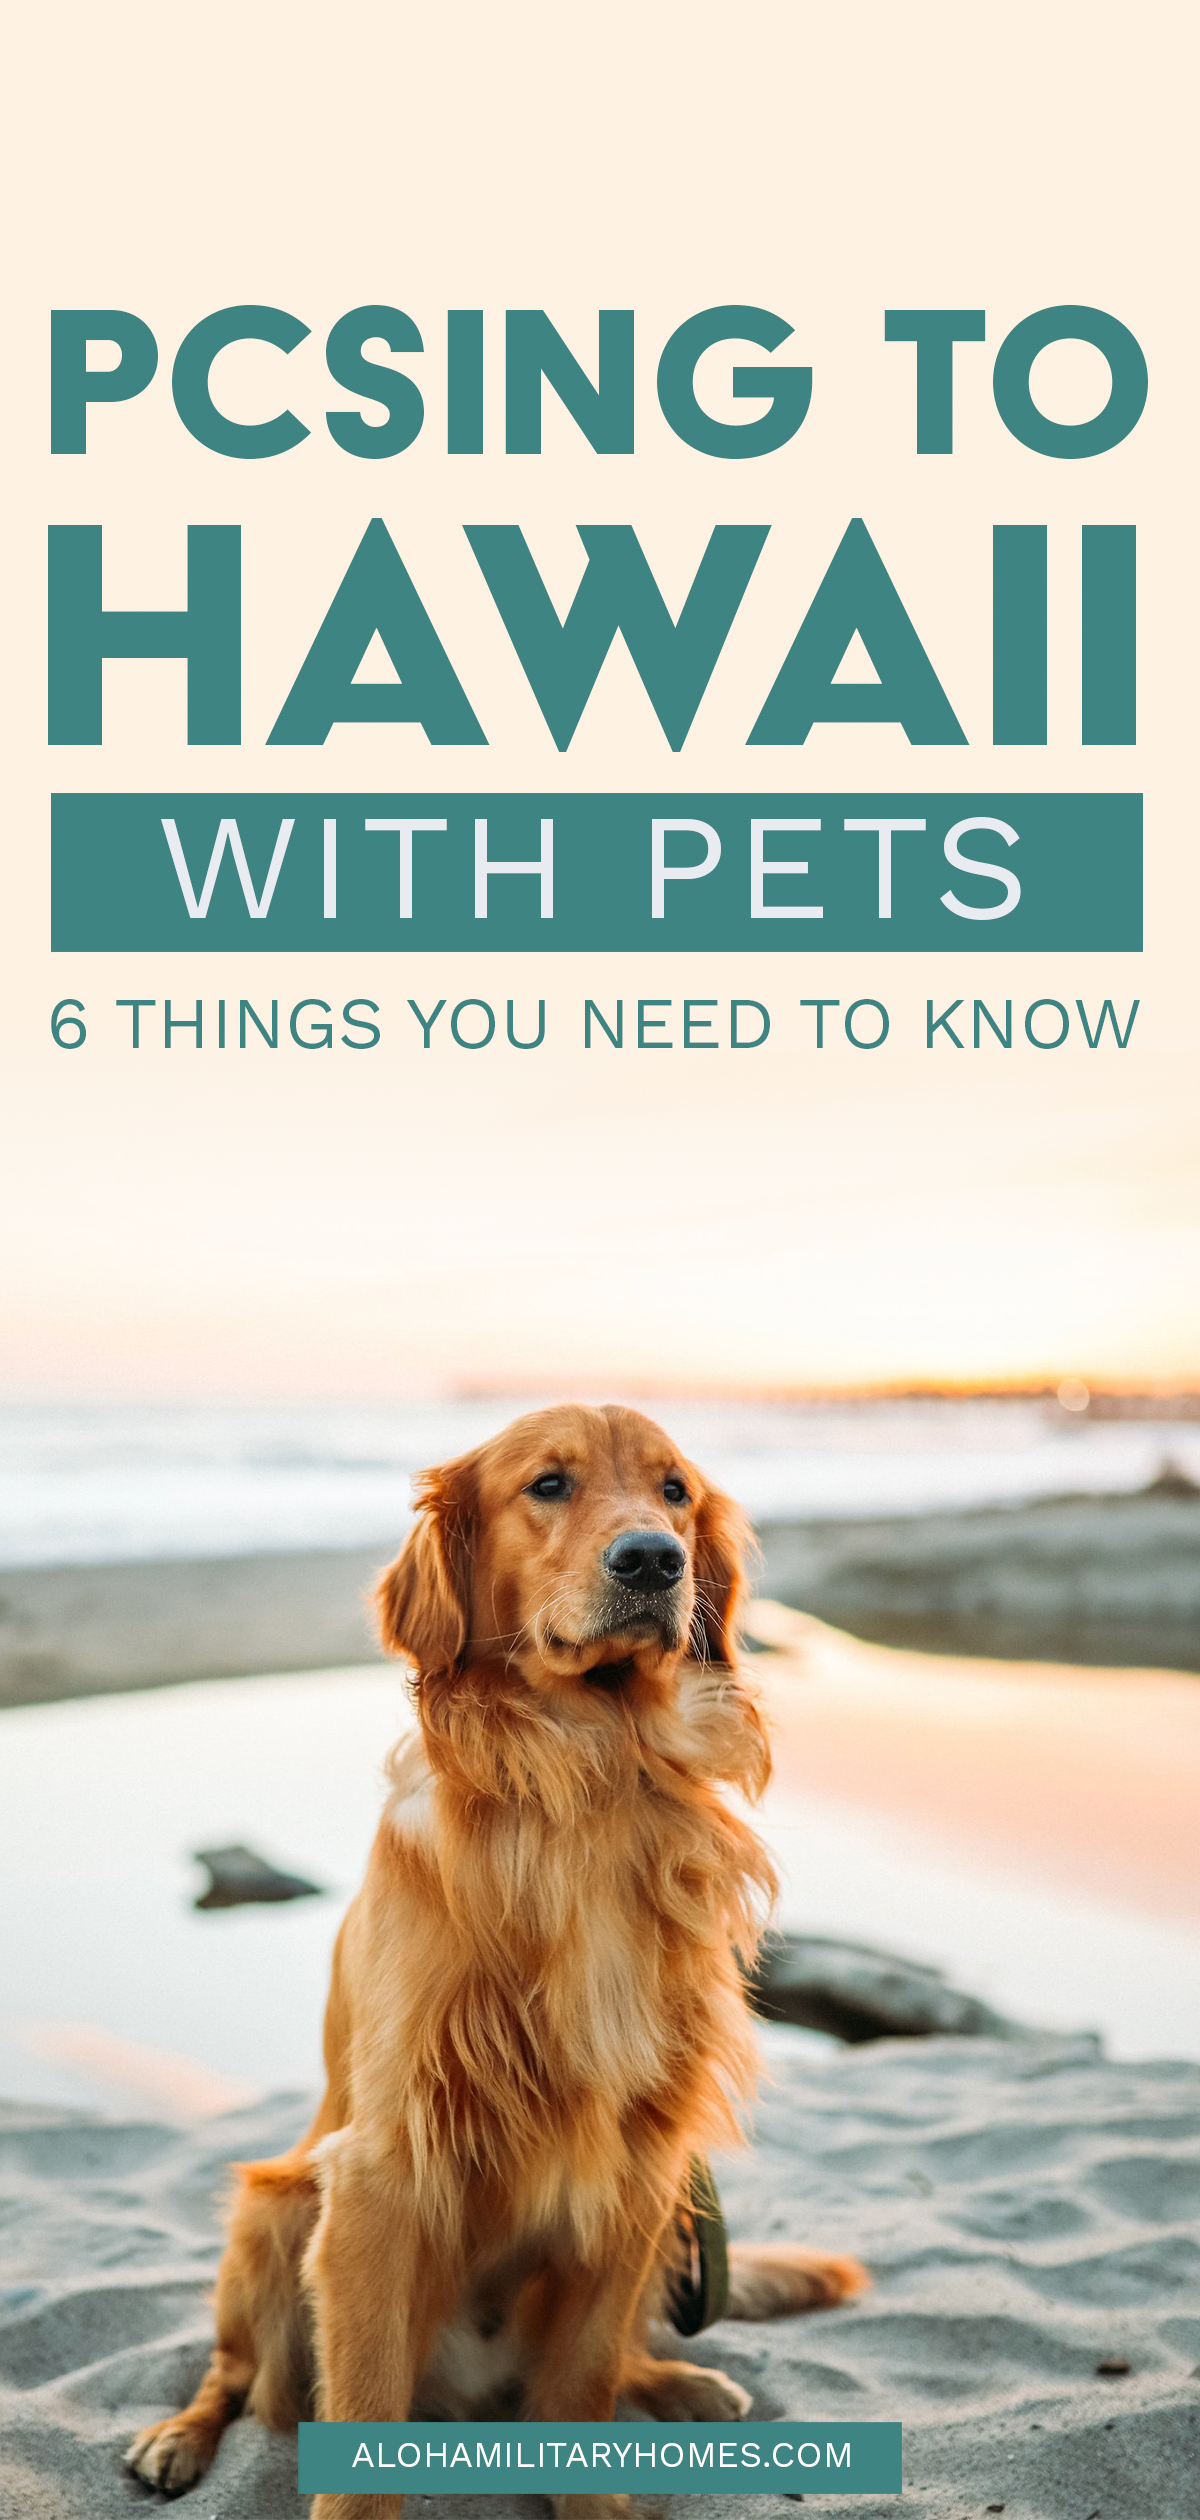 PCSING TO HAWAII WITH PETS. 6 Things you need to know if